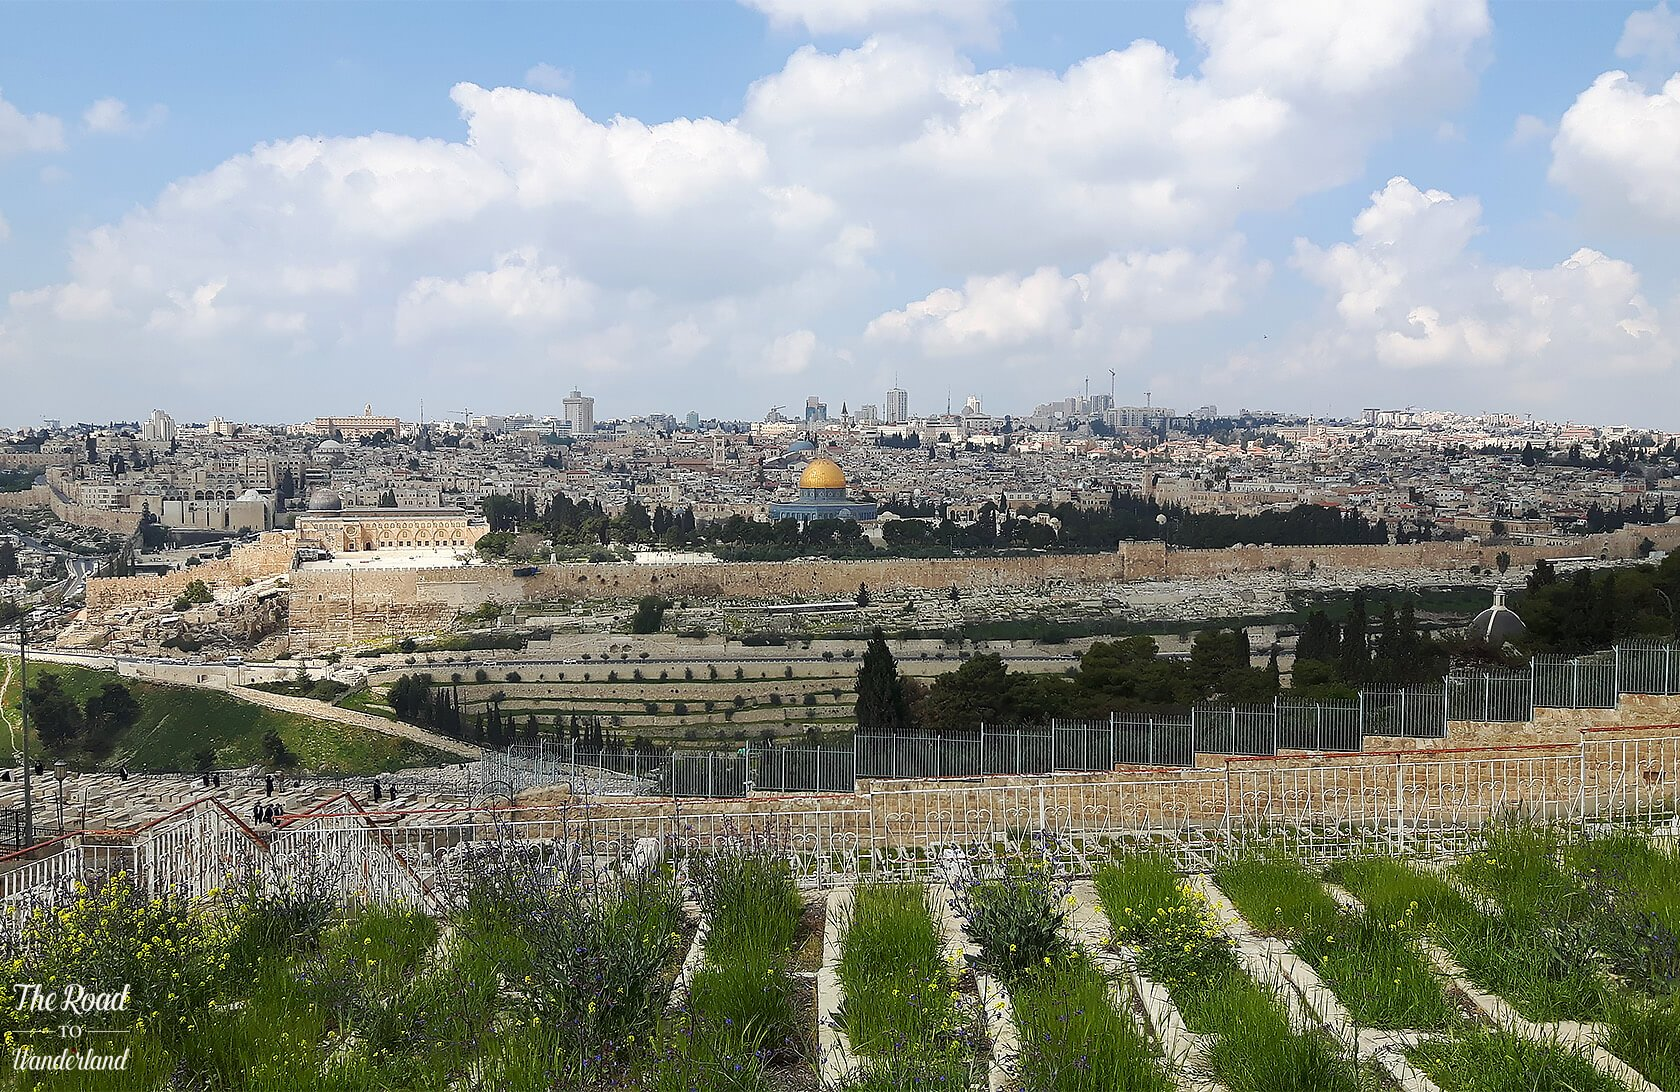 Religious sites in Jerusalem: The Temple Mount